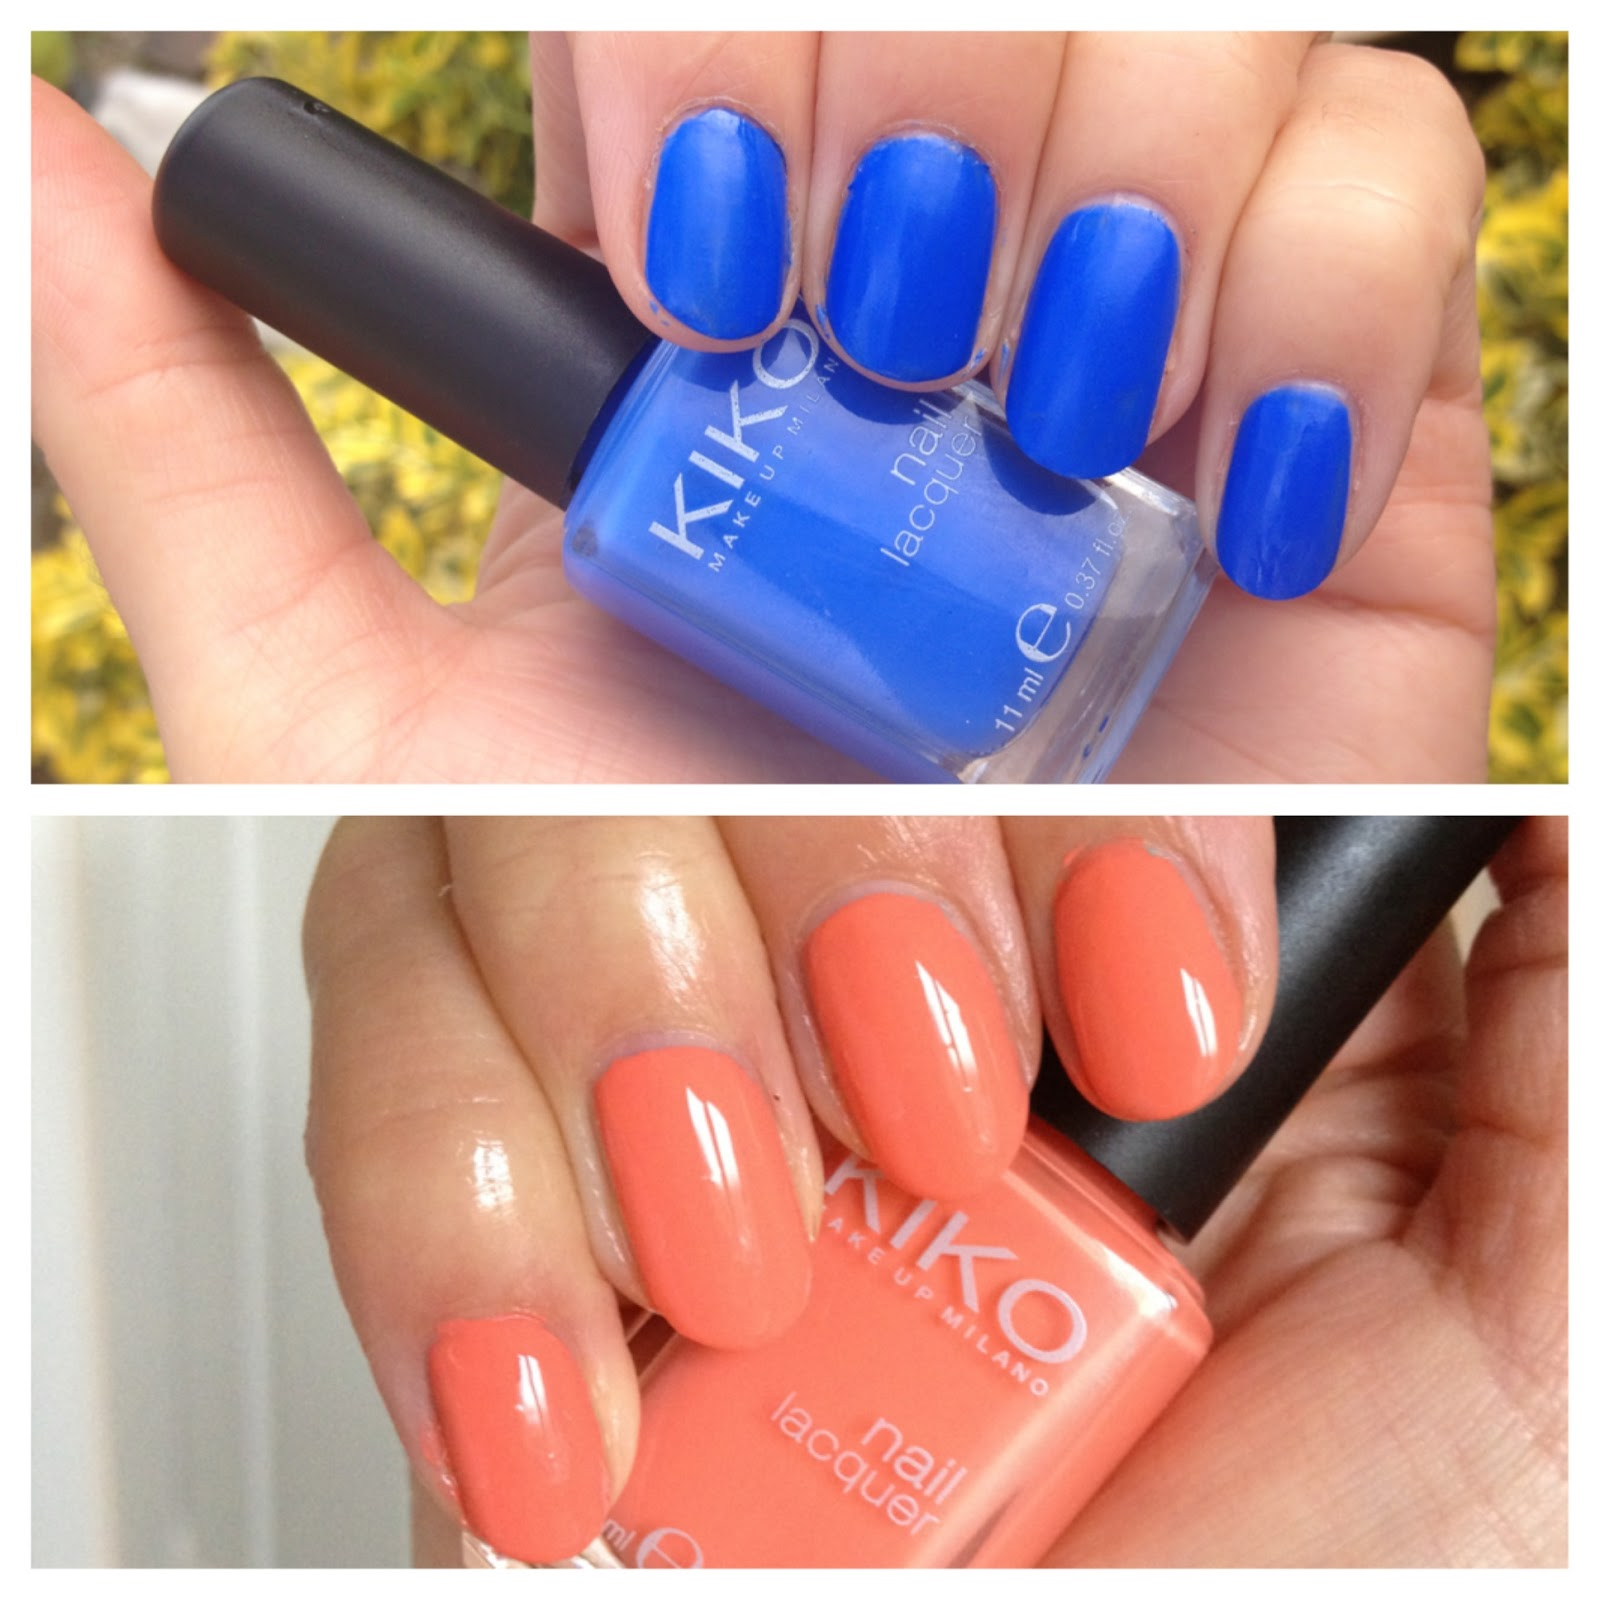 BEAUTY & LE CHIC: Kiko Nails 336 Electric Blue & 358 Peach Rose